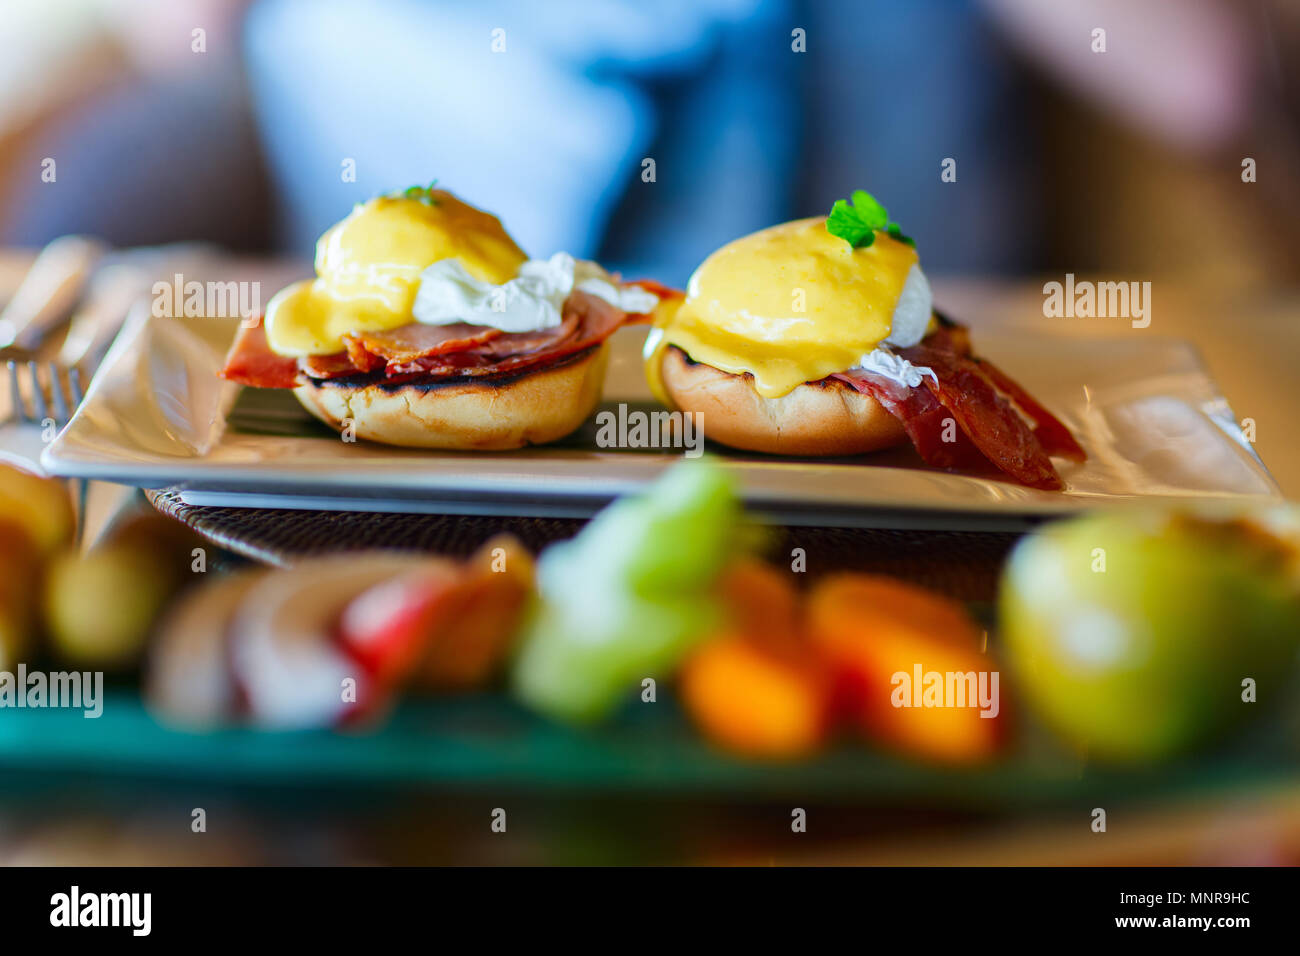 Delicious breakfast with poached eggs Benedict - Stock Image